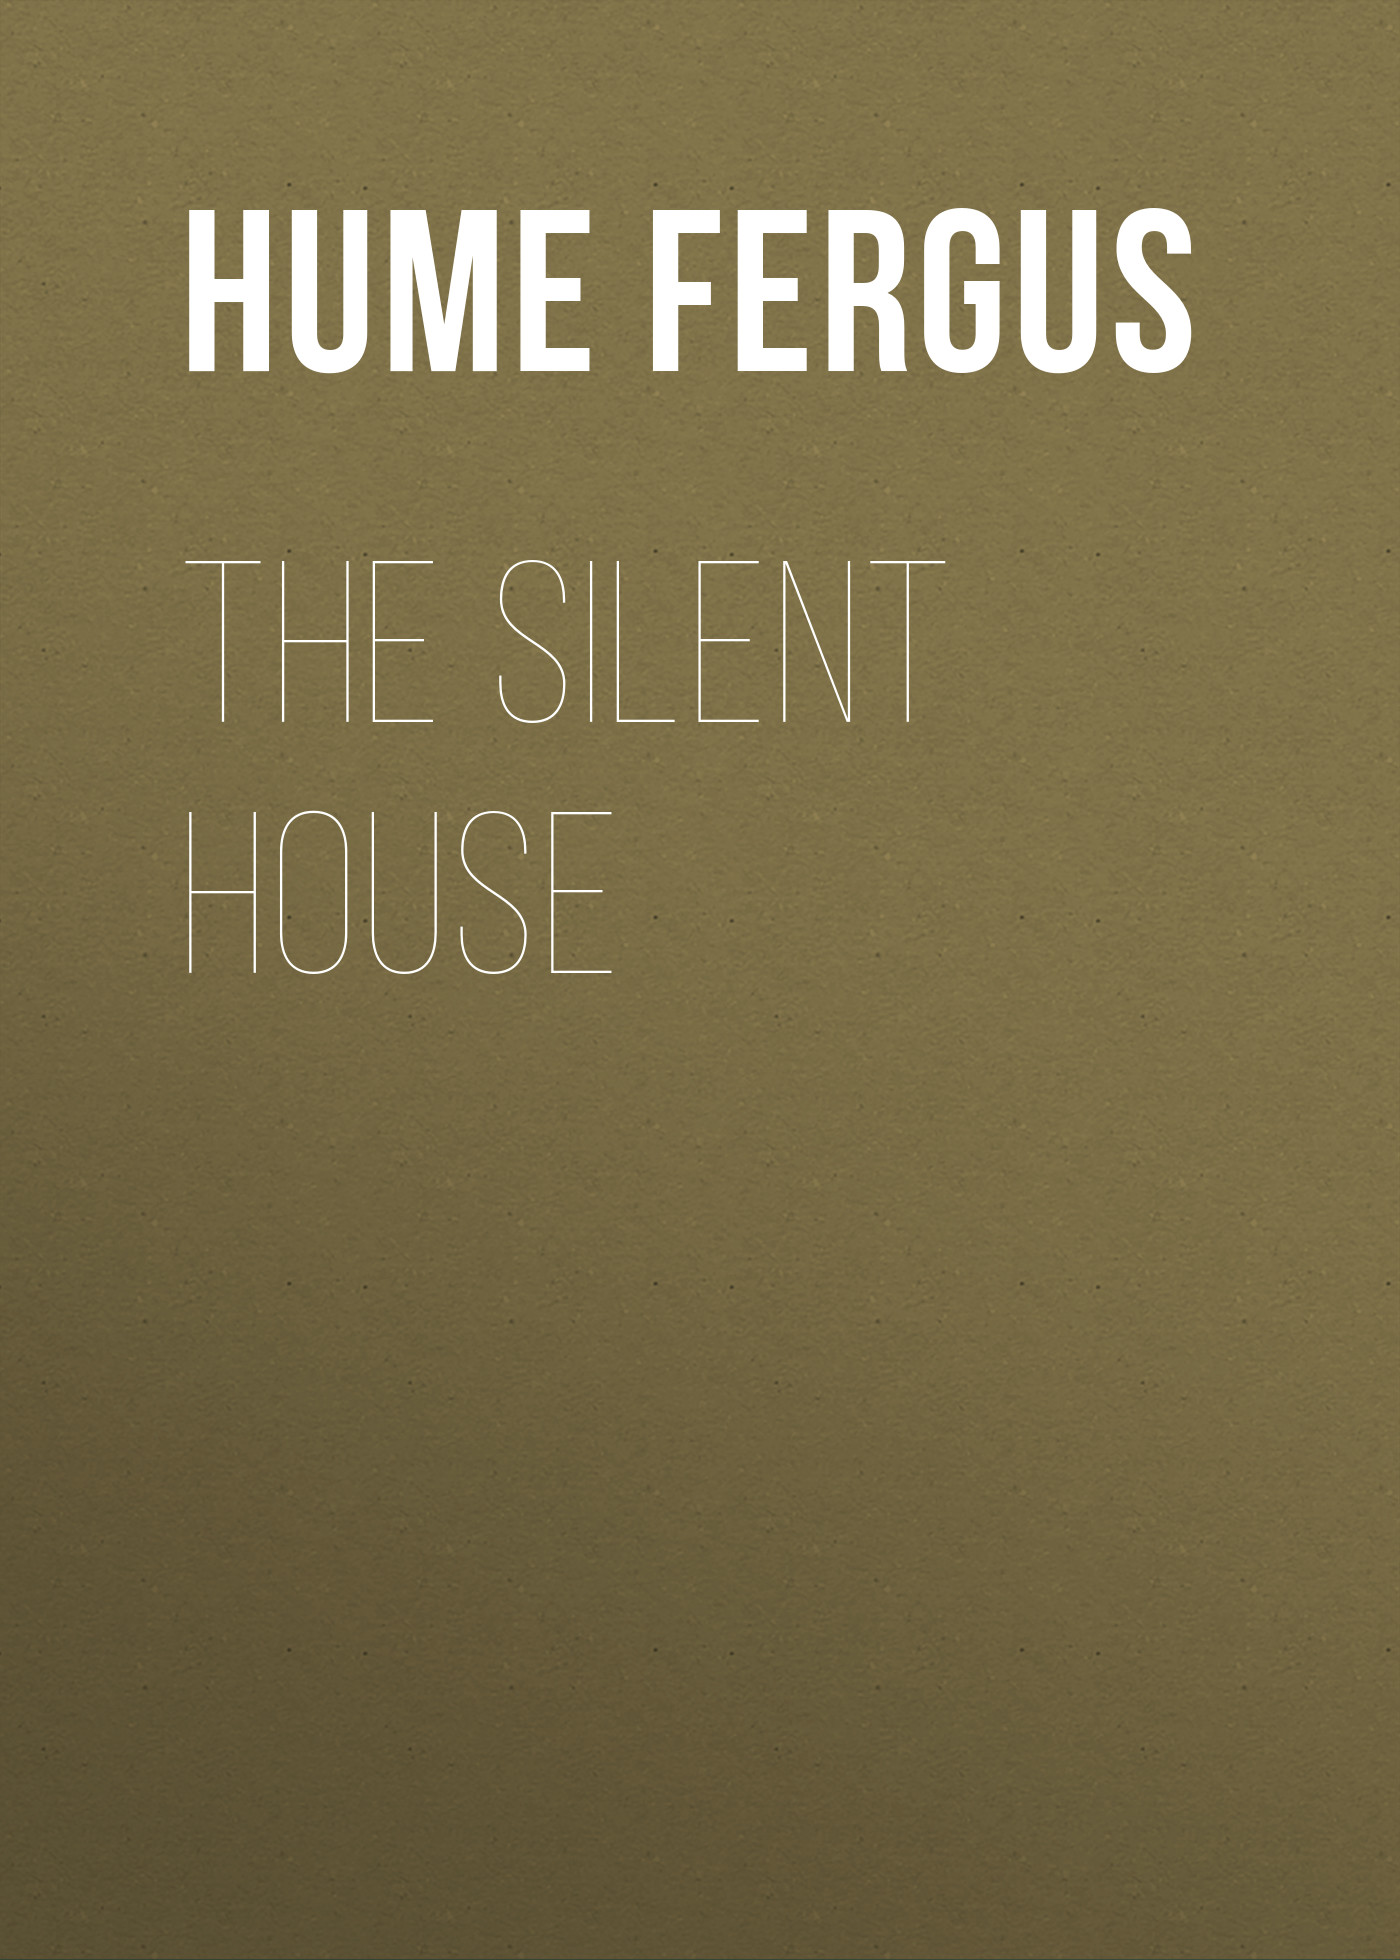 все цены на Hume Fergus The Silent House